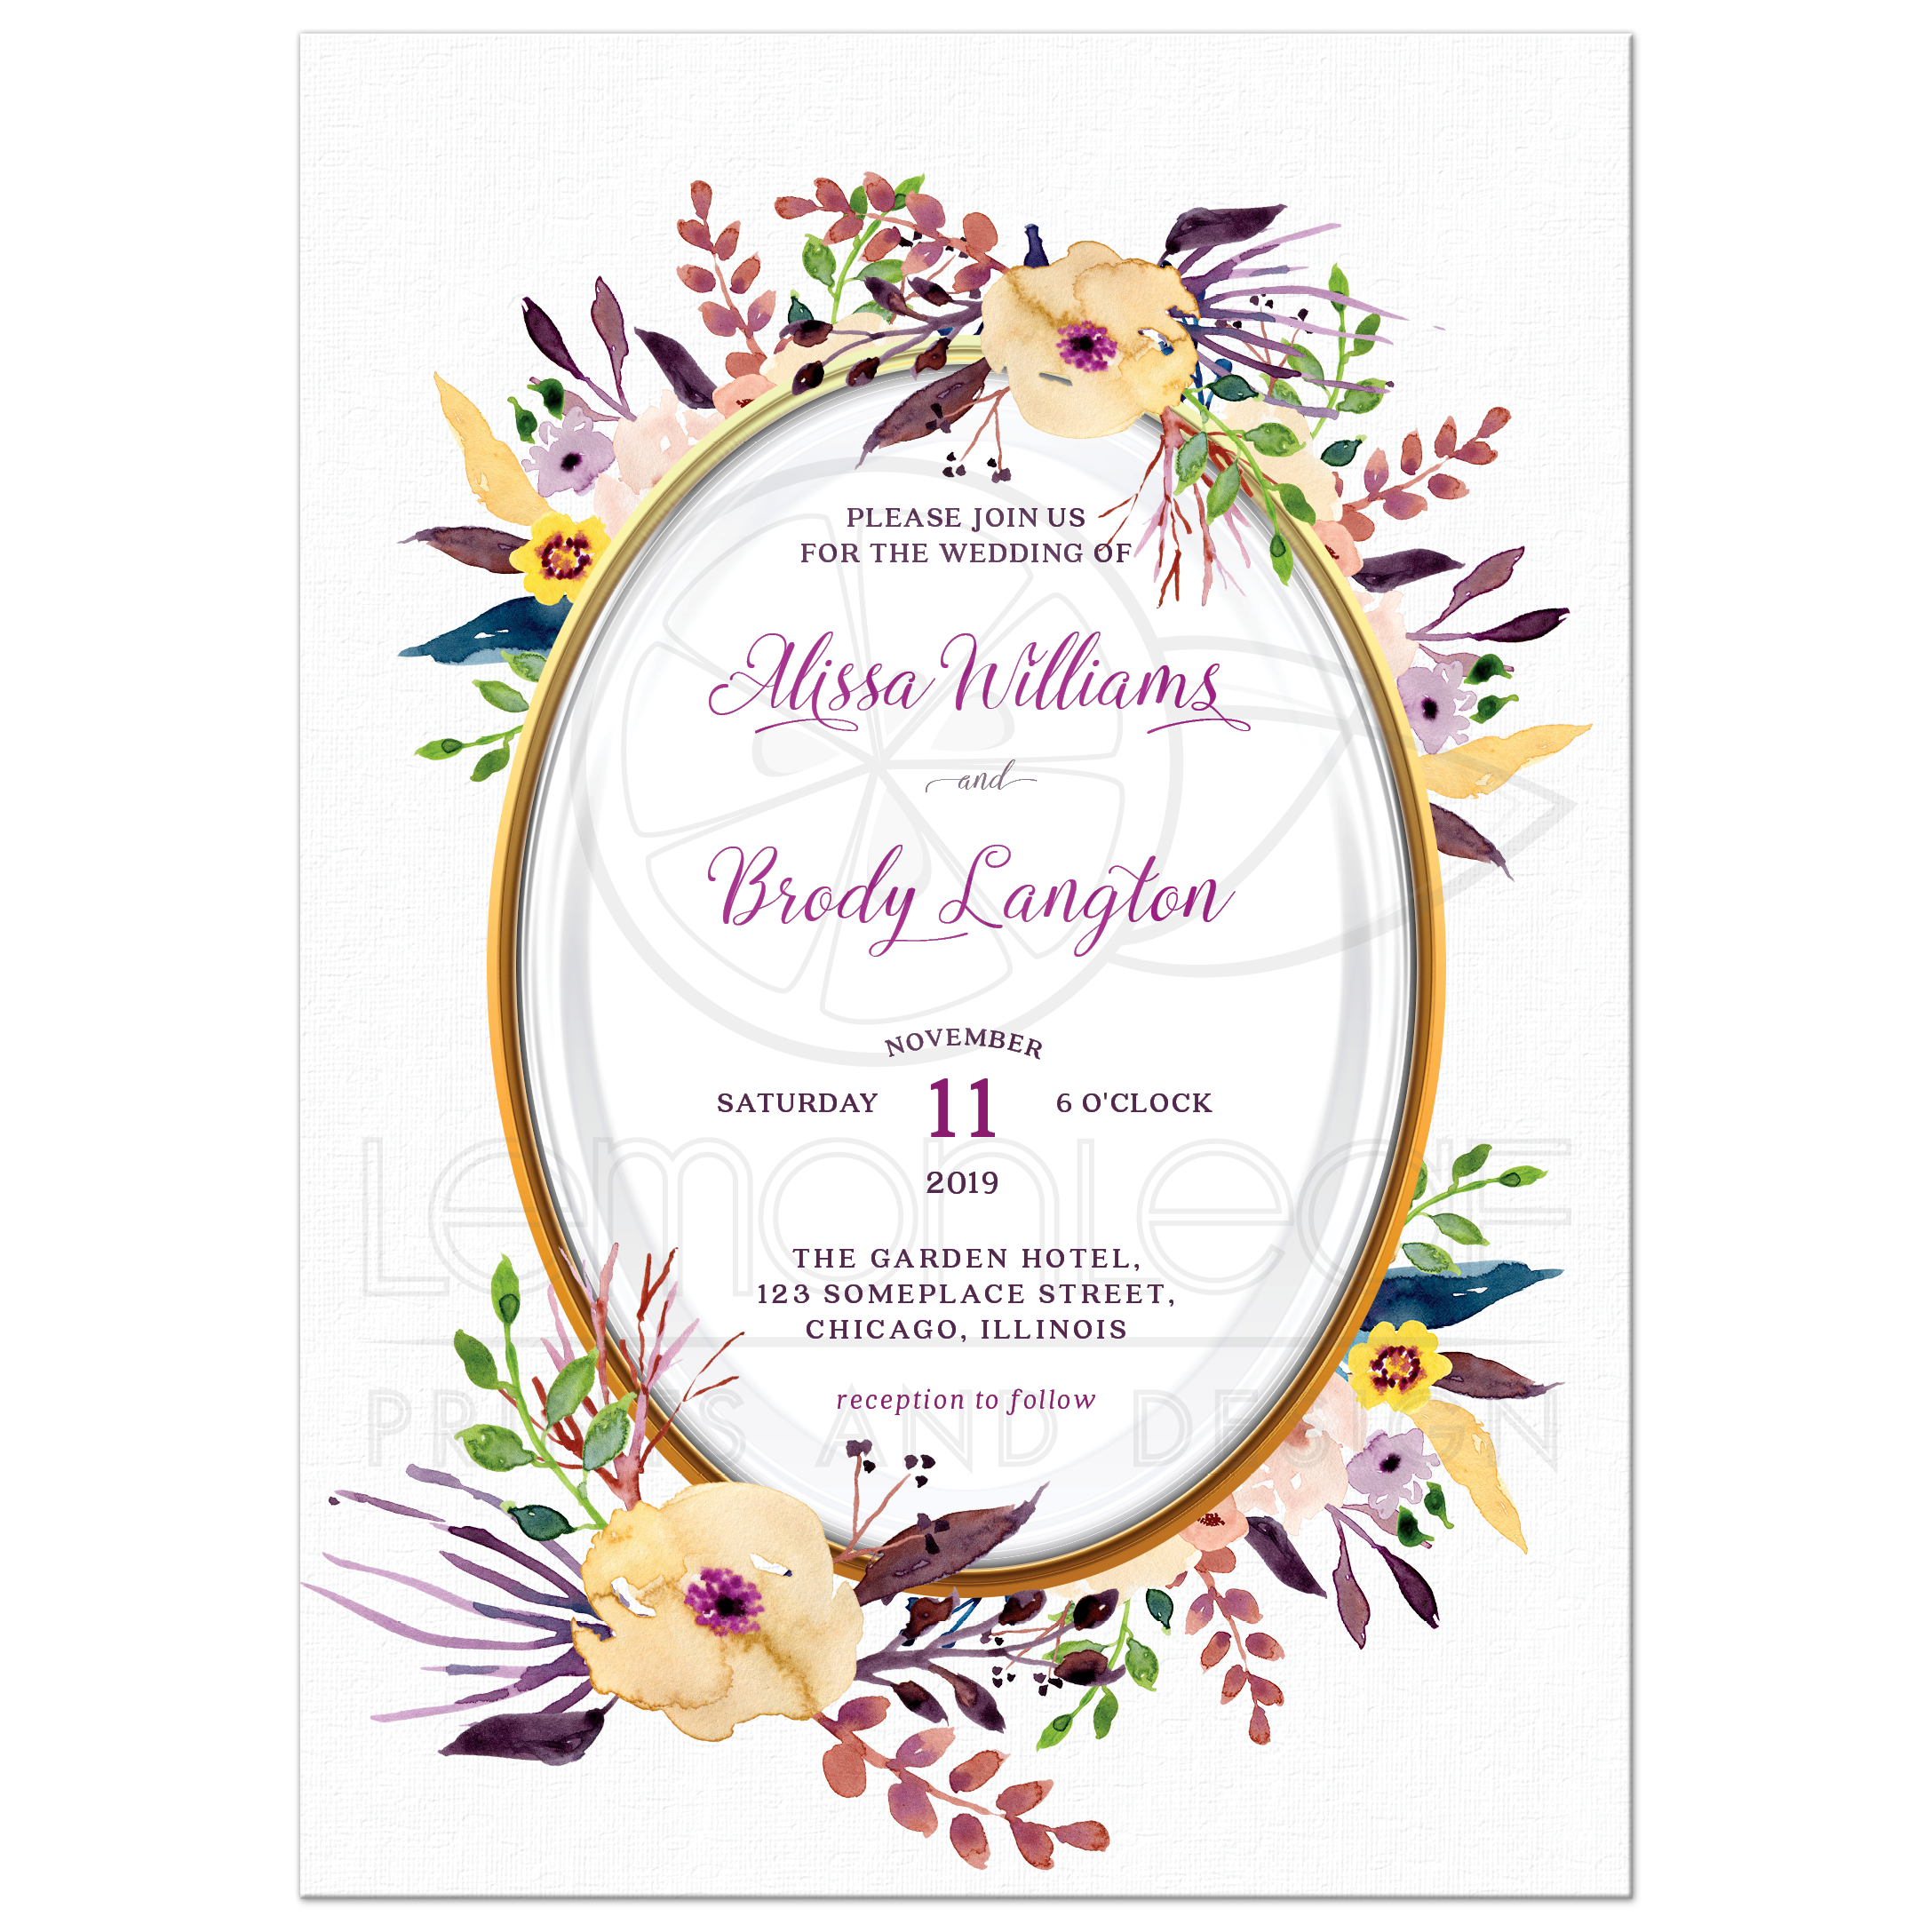 Oval Watercolor Flower Border Wedding Invitation